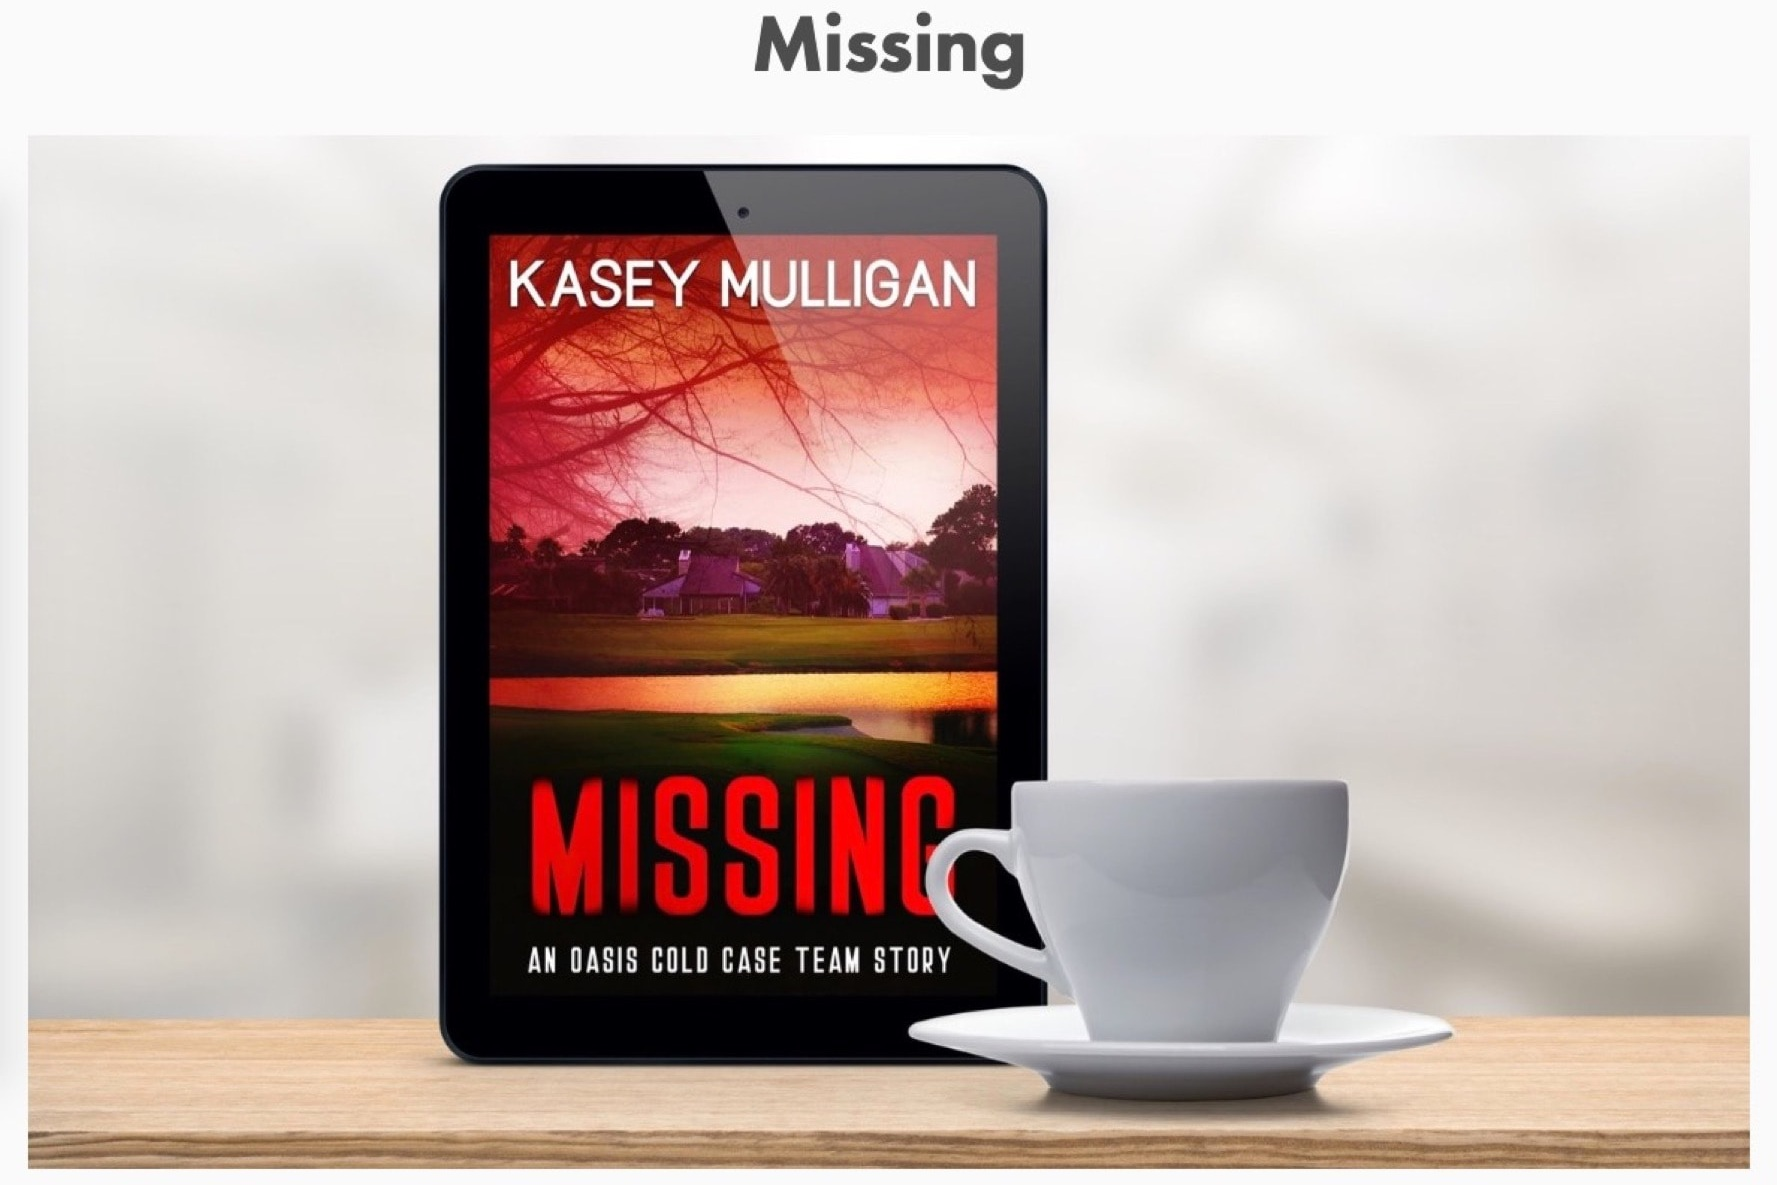 Kasey Mulligan - Details coming soon.